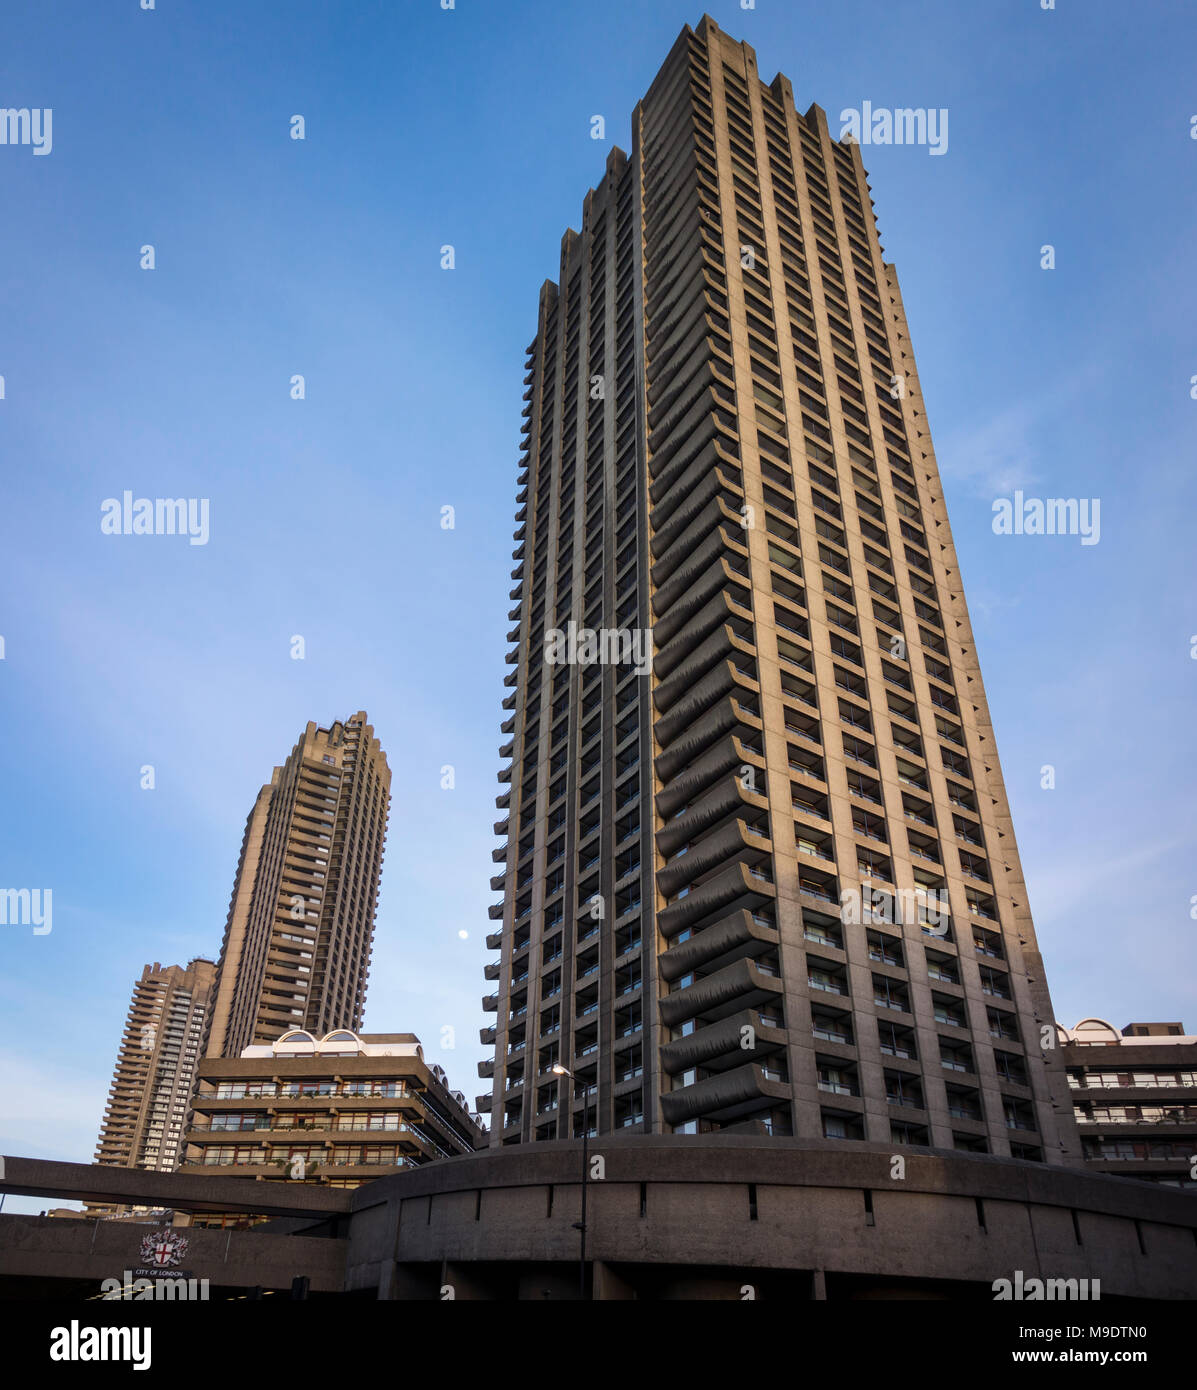 Brutalist Lauderdale Tower Barbican Estate residential tower block concrete skyscraper, City of London, UK - Stock Image